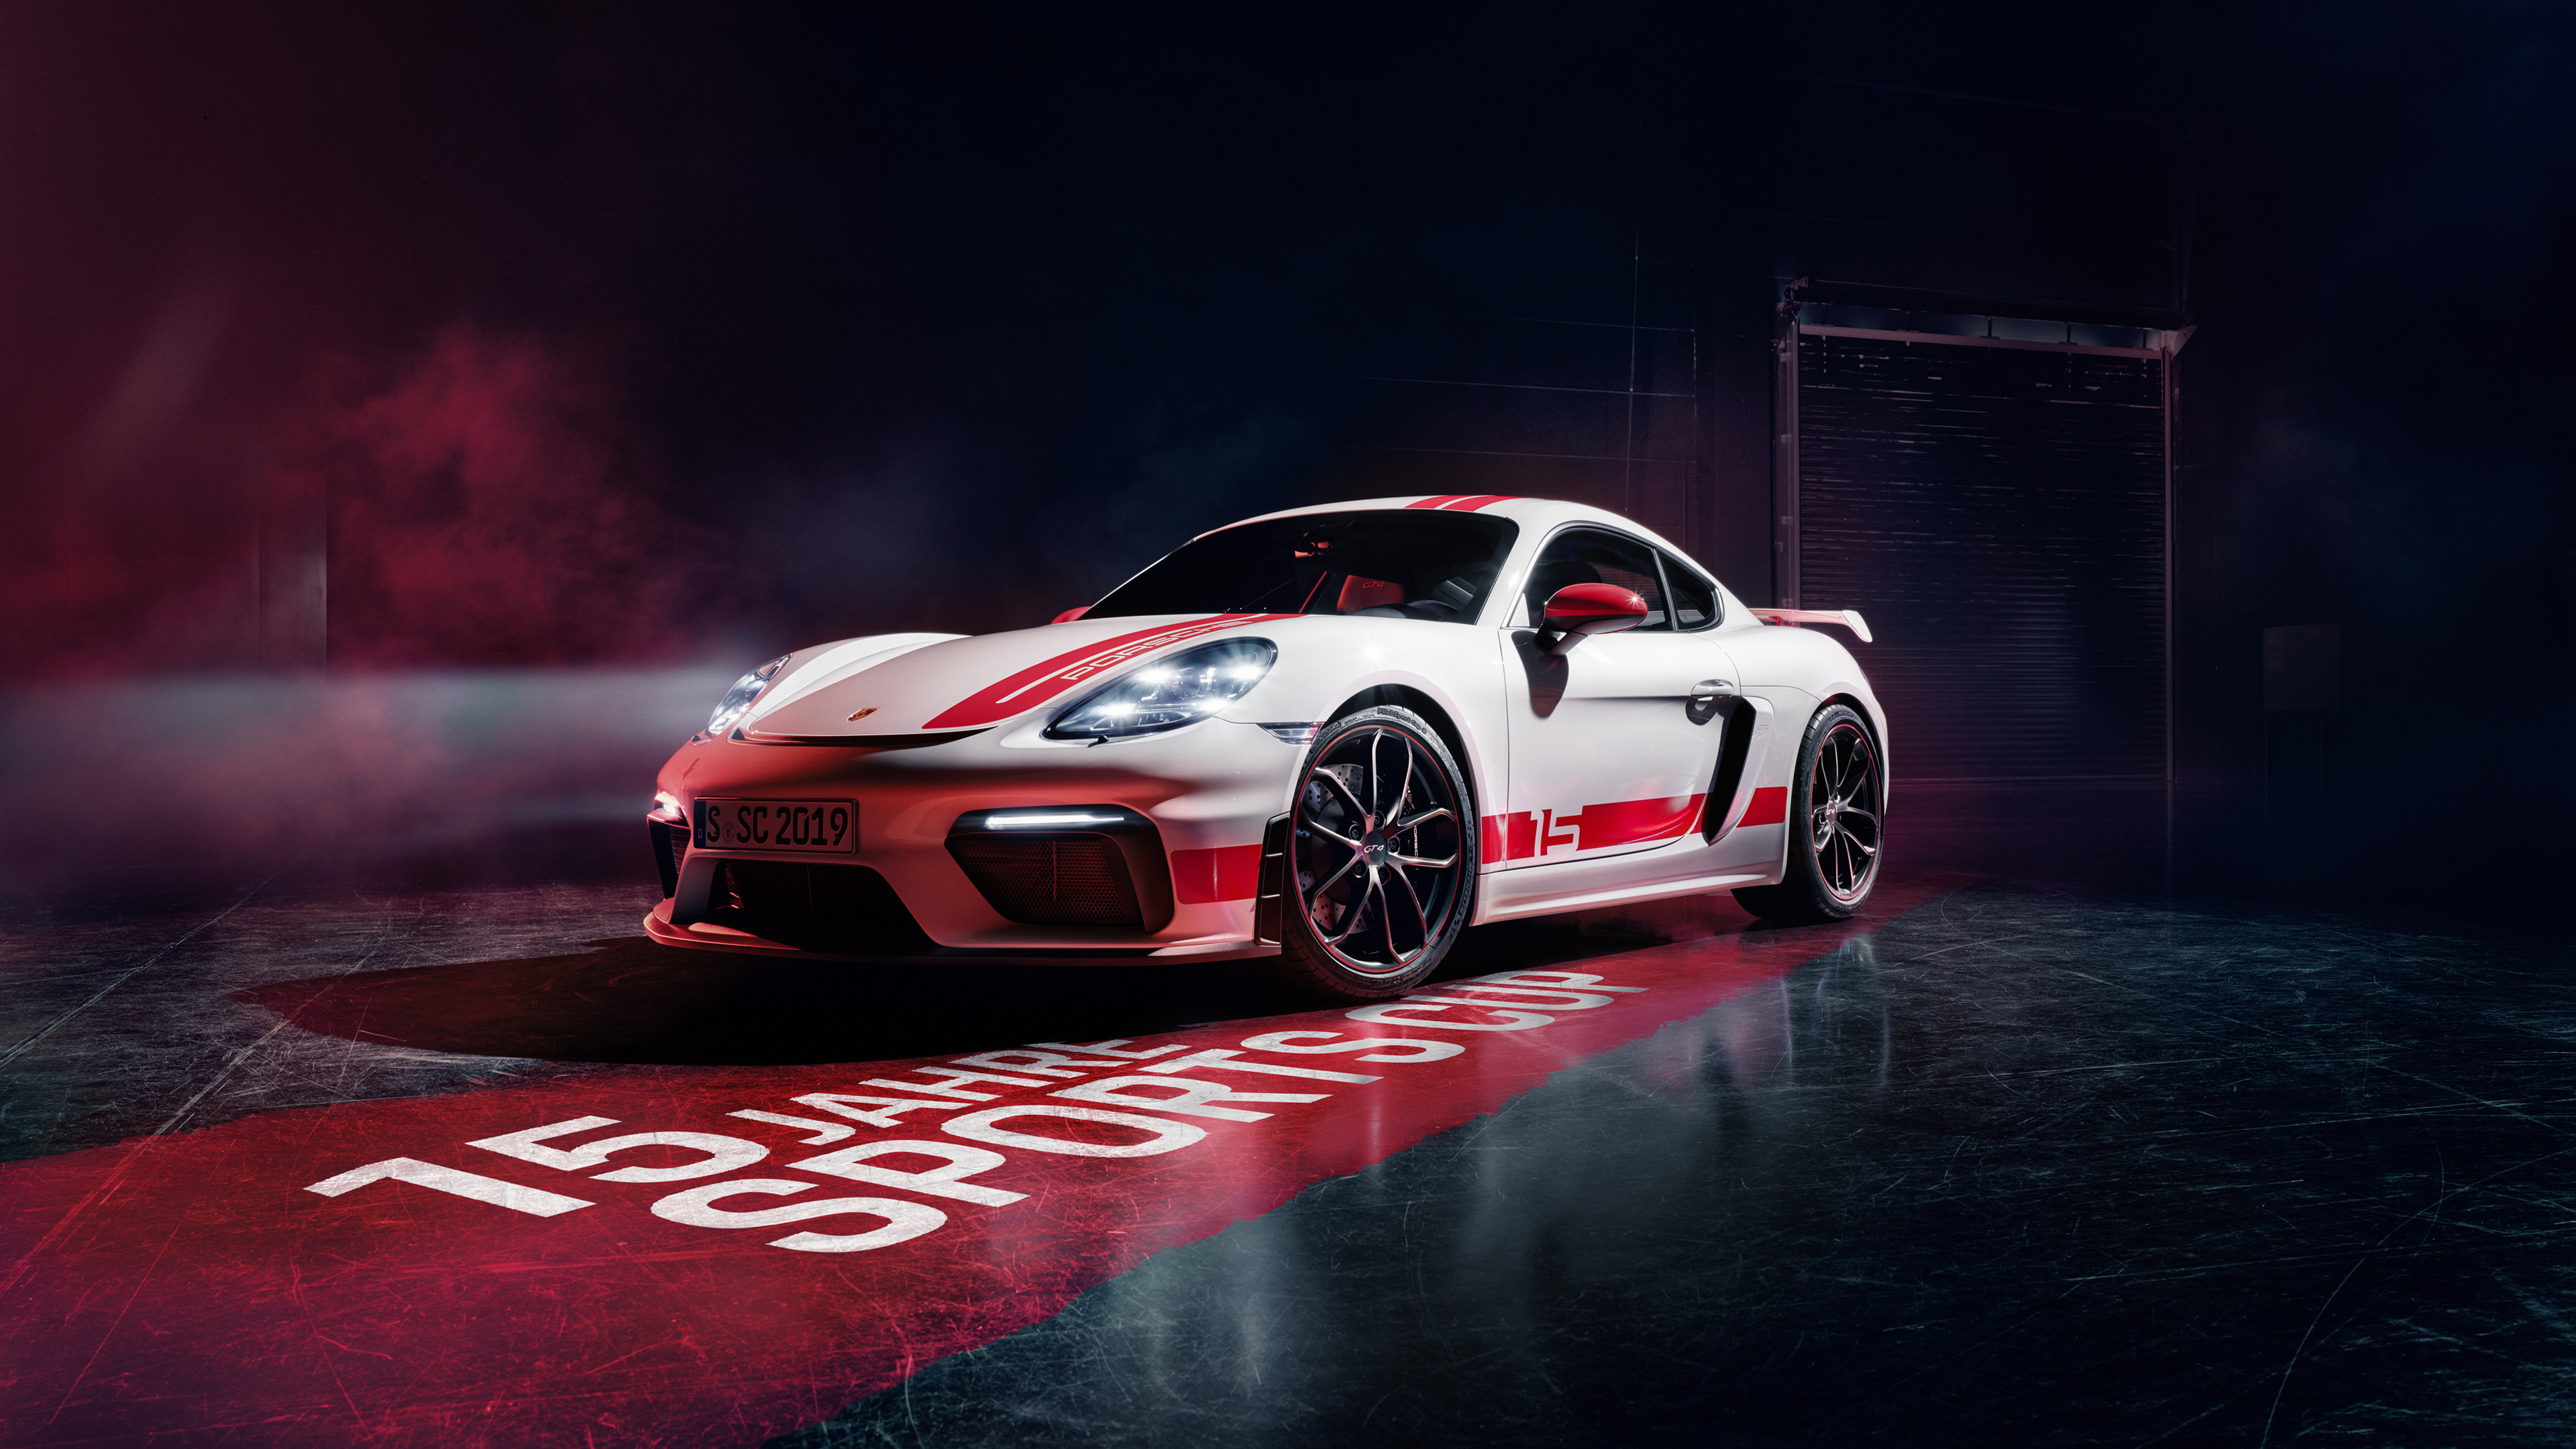 porsche 718 cayman gt4 sports cup edition 2019 1572661077 - Porsche 718 Cayman GT4 Sports Cup Edition 2019 - porsche wallpapers, porsche 718 wallpapers, hd-wallpapers, cars wallpapers, 4k-wallpapers, 2019 cars wallpapers